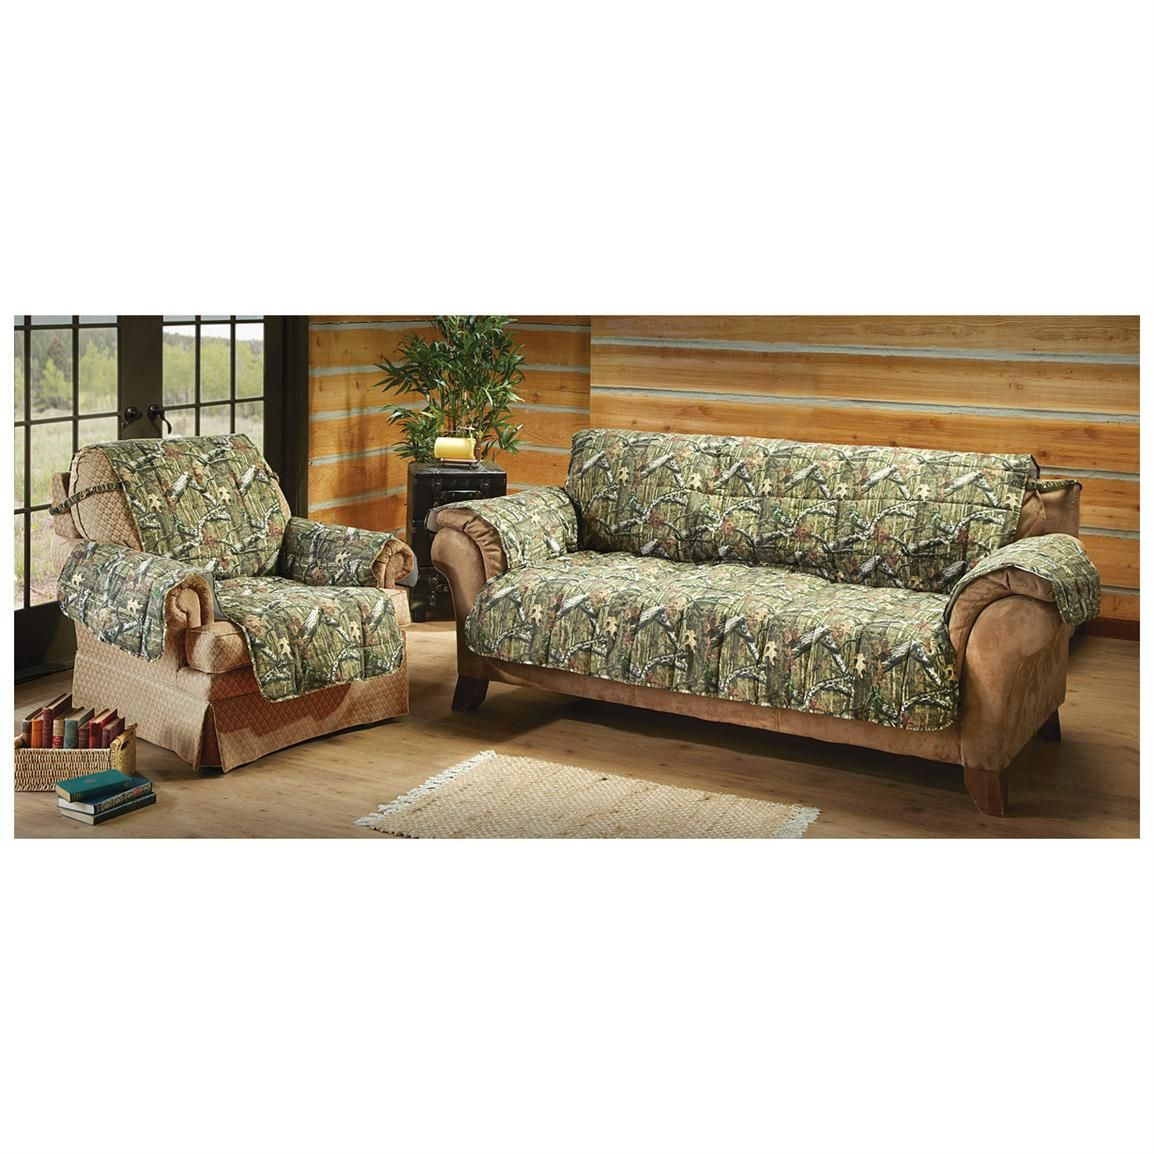 Living room covers for furniture - Bring Mossyoak To Your Living Room With  These Furniture Covers - Living Room Covers For Furniture